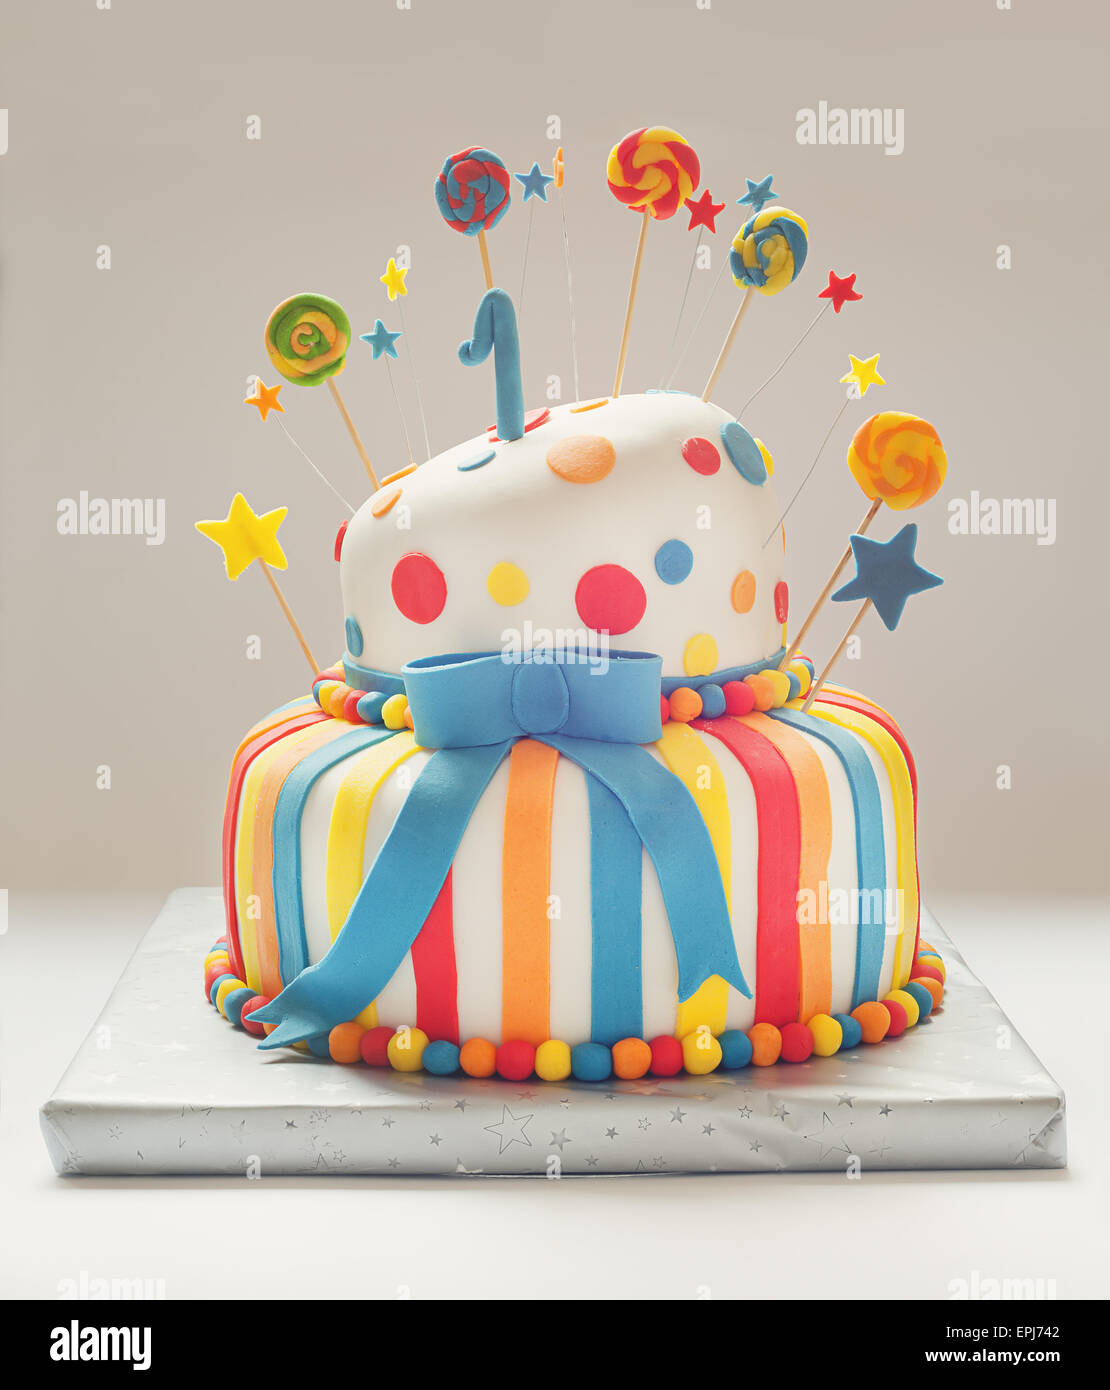 Wondrous Funny Birthday Cake With Number One On Top Sweet Colorful Stock Birthday Cards Printable Benkemecafe Filternl